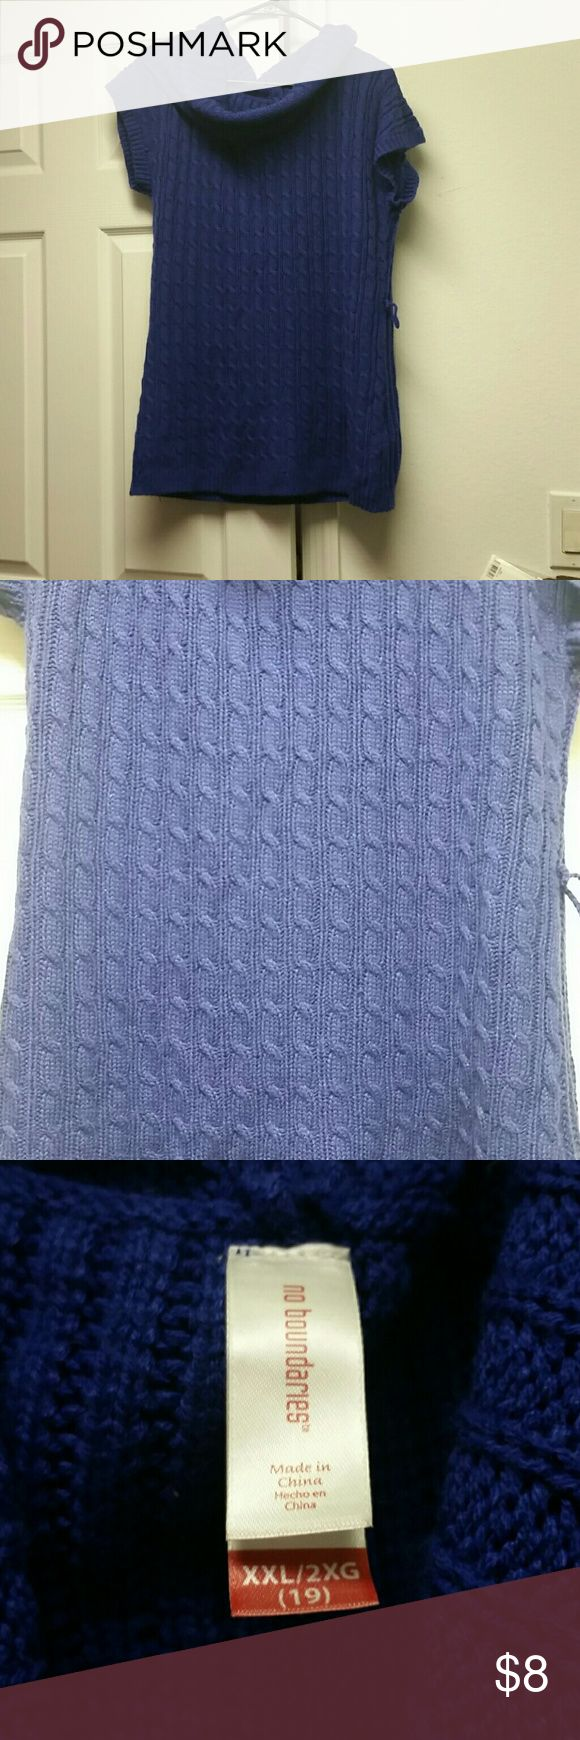 2x cable knit short sleeve sweater Juniors 2x indigo color cable knit short sleeve sweater. Has loops on the side for a belt which I do not have anymore. No rips or stains or pulls. Has a cowl neck. Reasonable offers accepted. Smoke free, pet friendly home. No Boundaries Sweaters Cowl & Turtlenecks